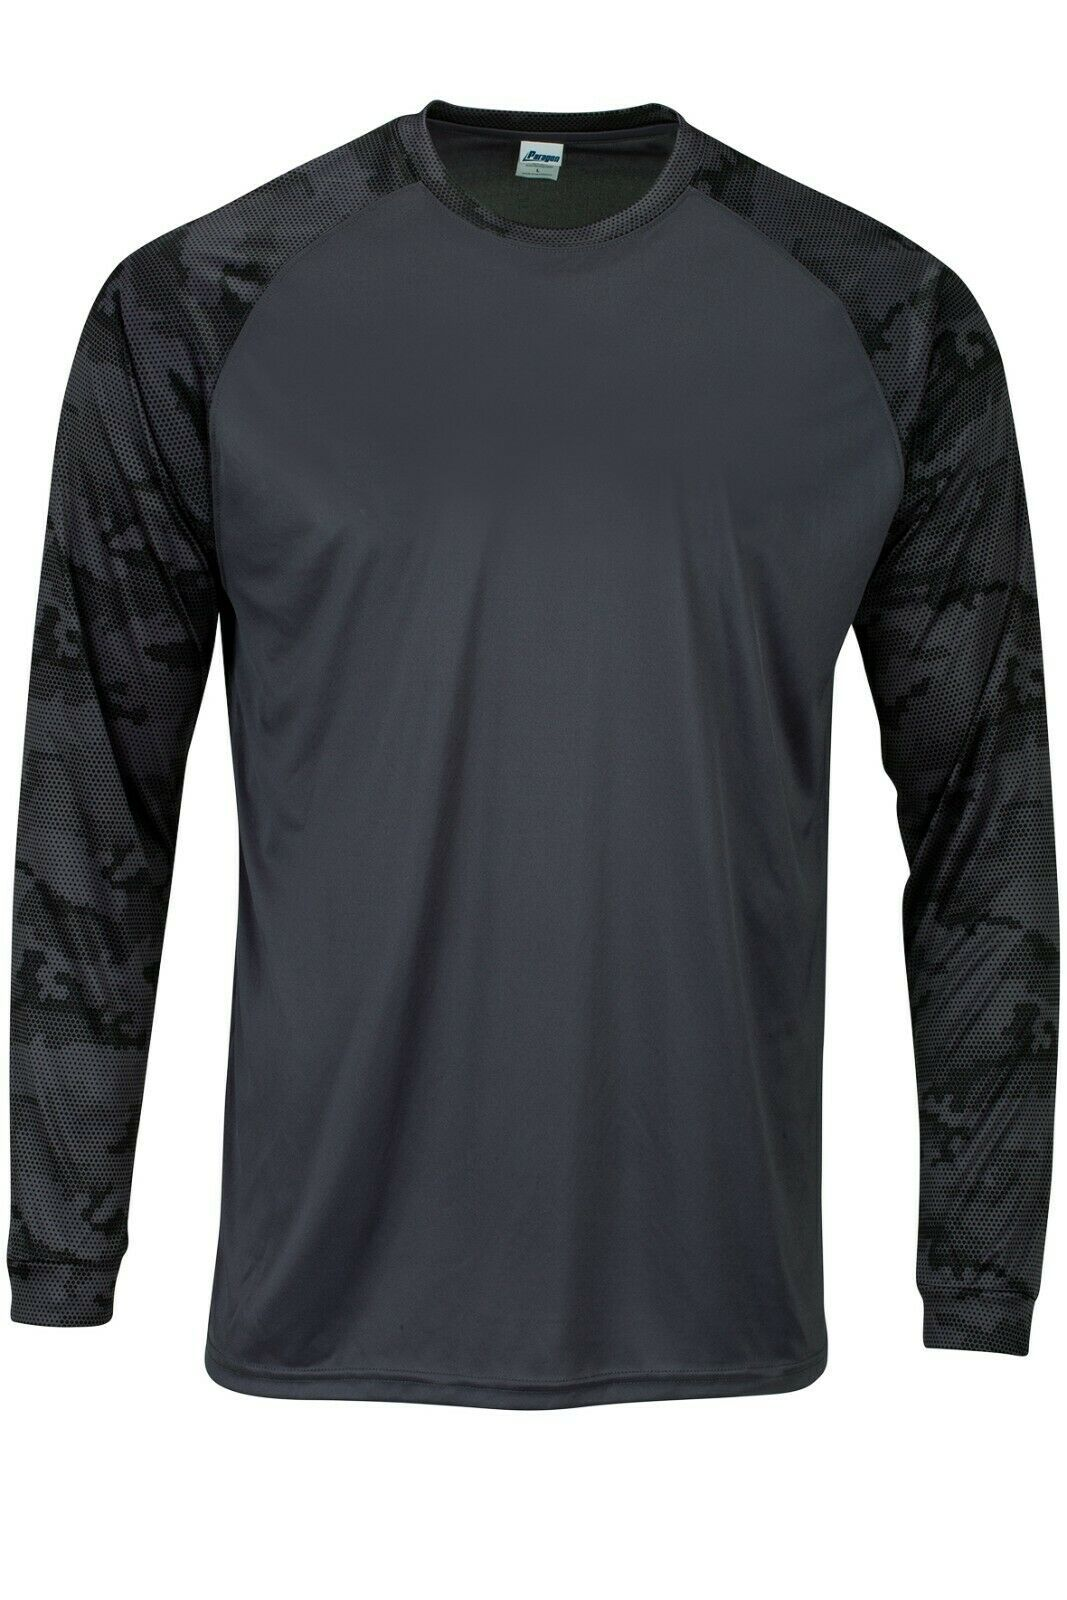 Sun Protection Long Camo Sleeve Dri Fit Graphite Gray sunshirt base layer SPF50+